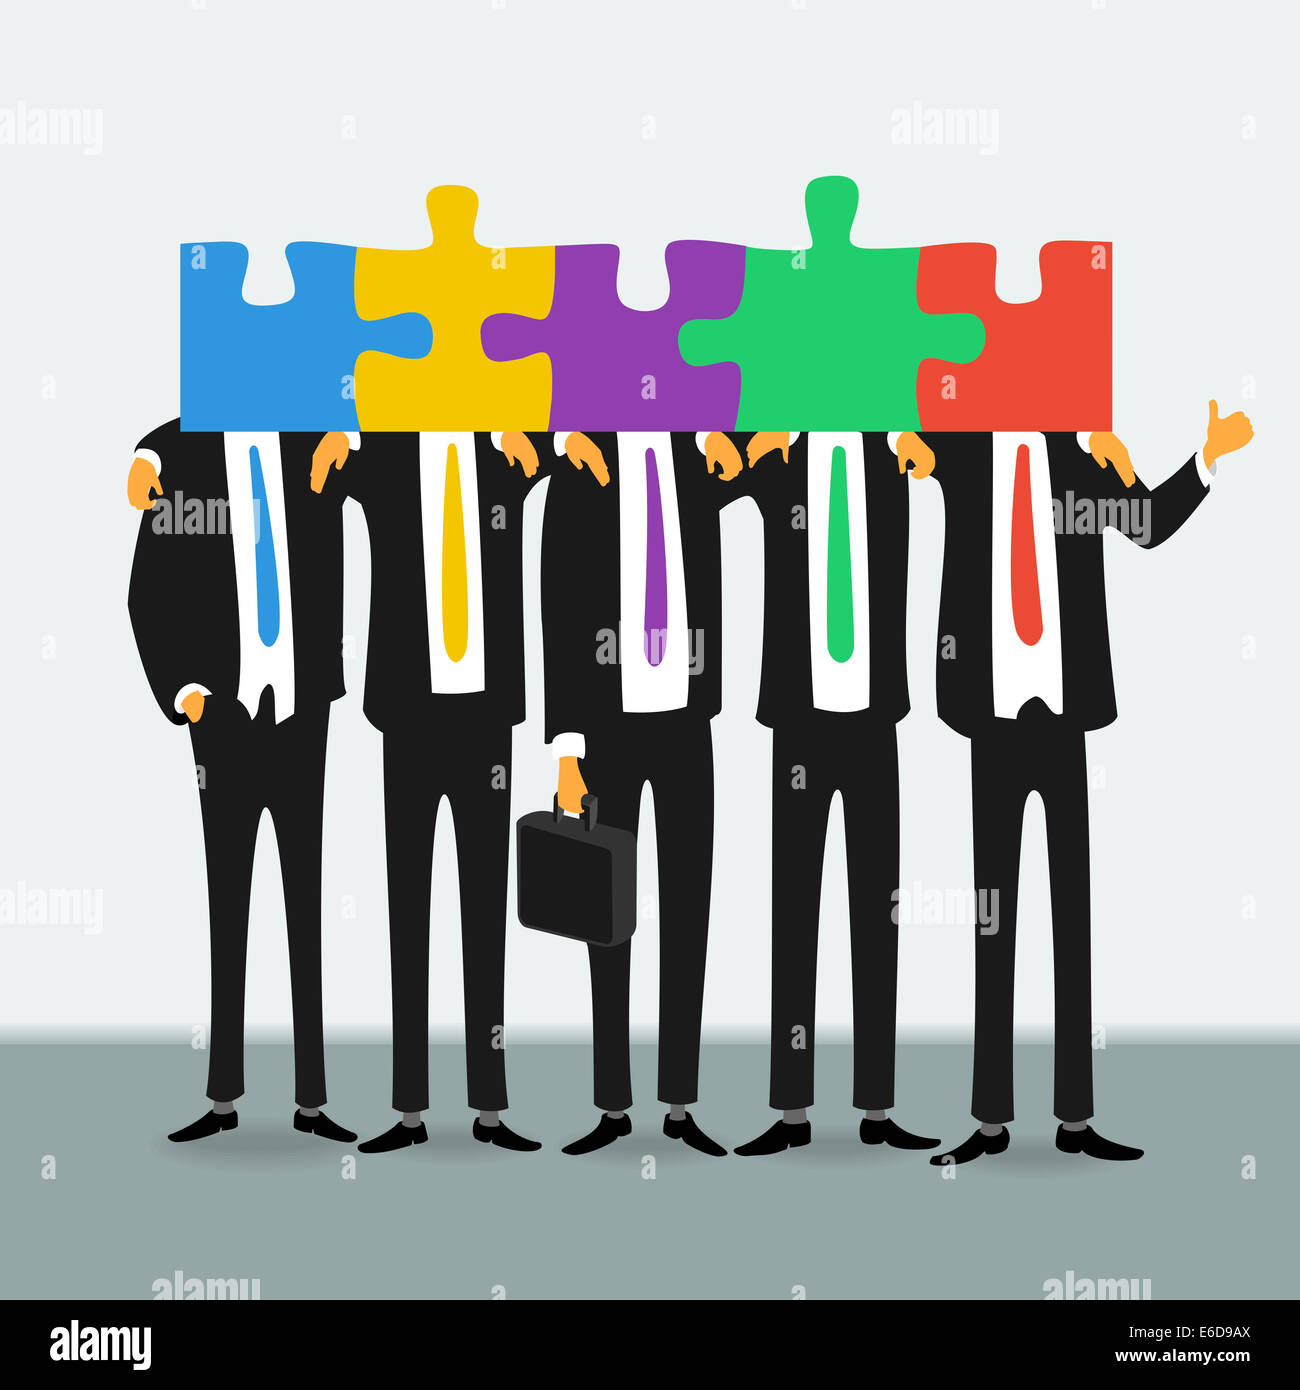 Team of successful business people - Stock Image